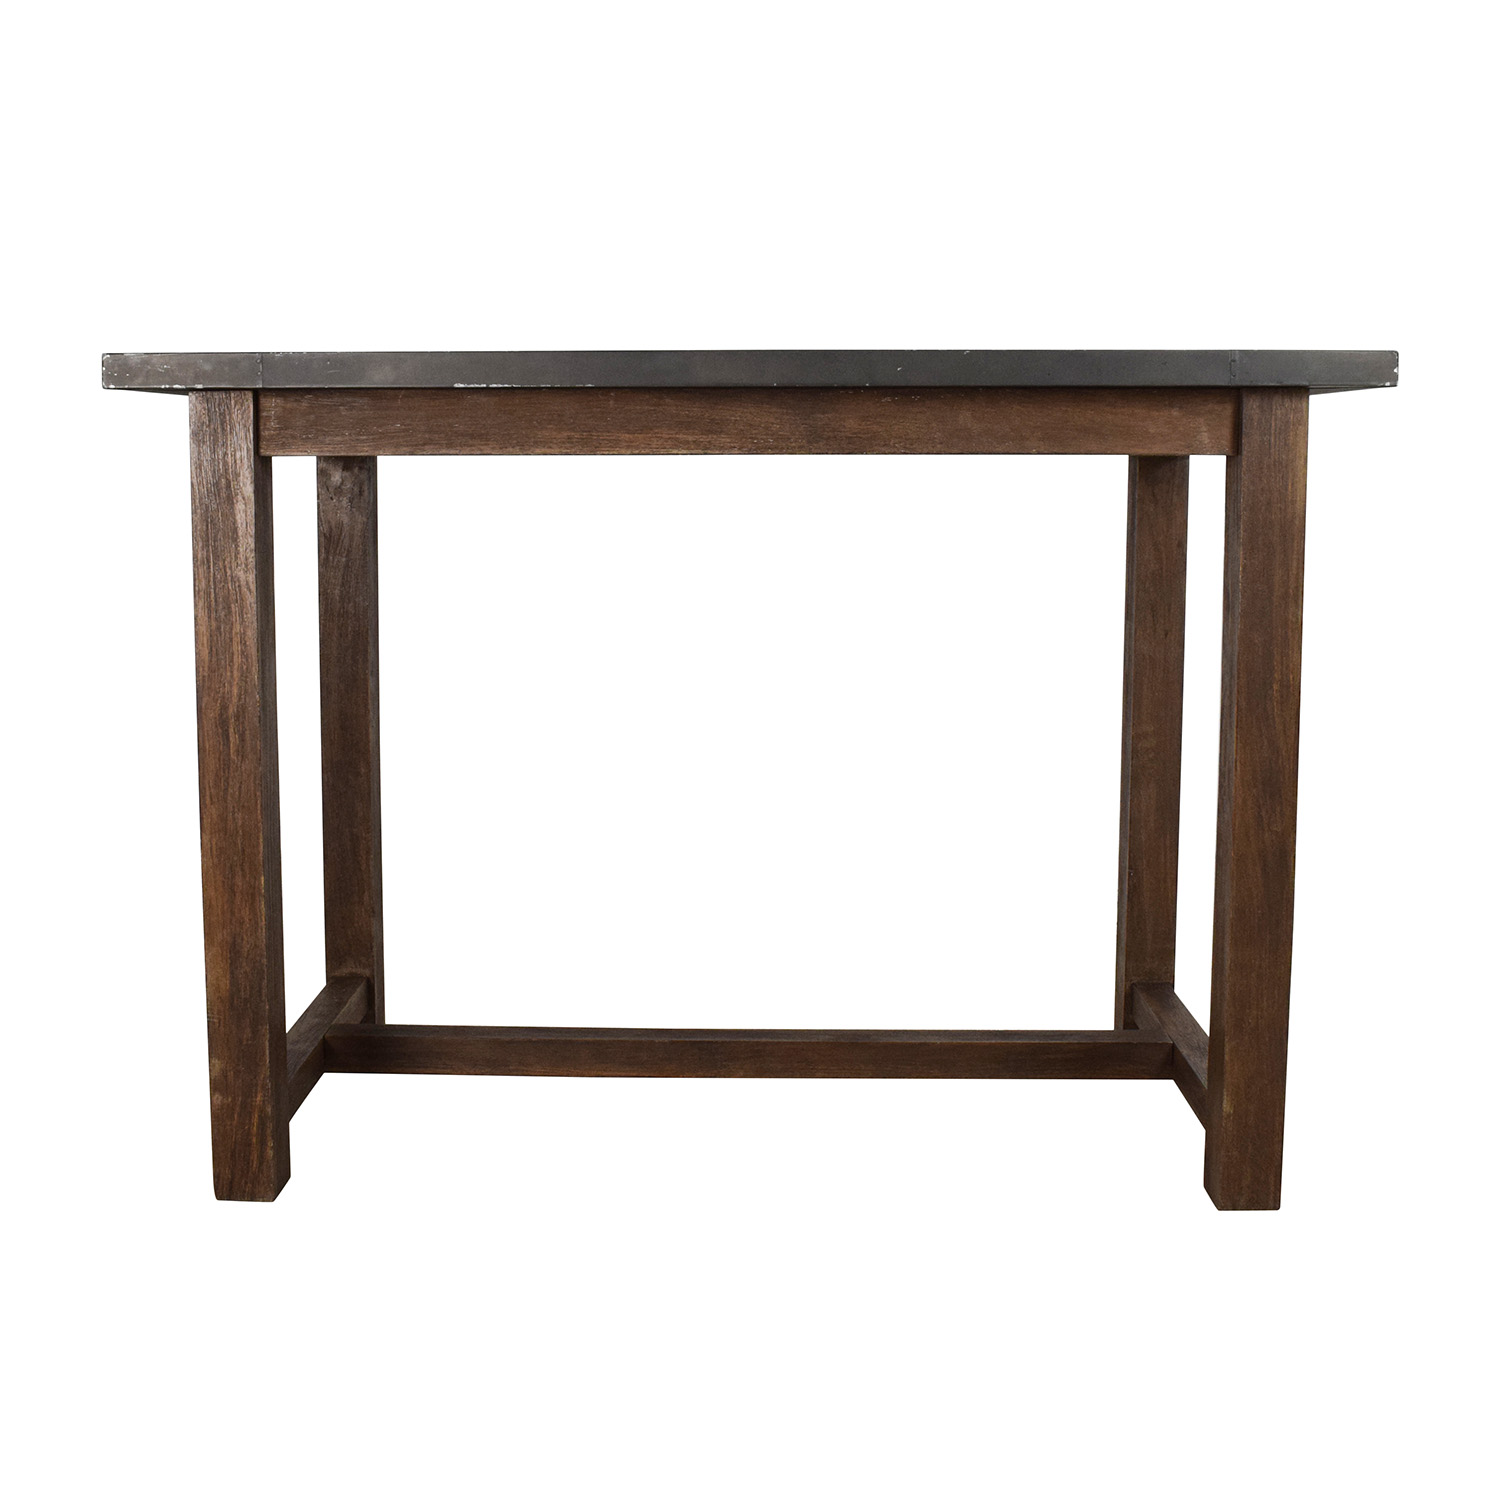 Crate and Barrel Crate & Barrel Galvin High Table Tables